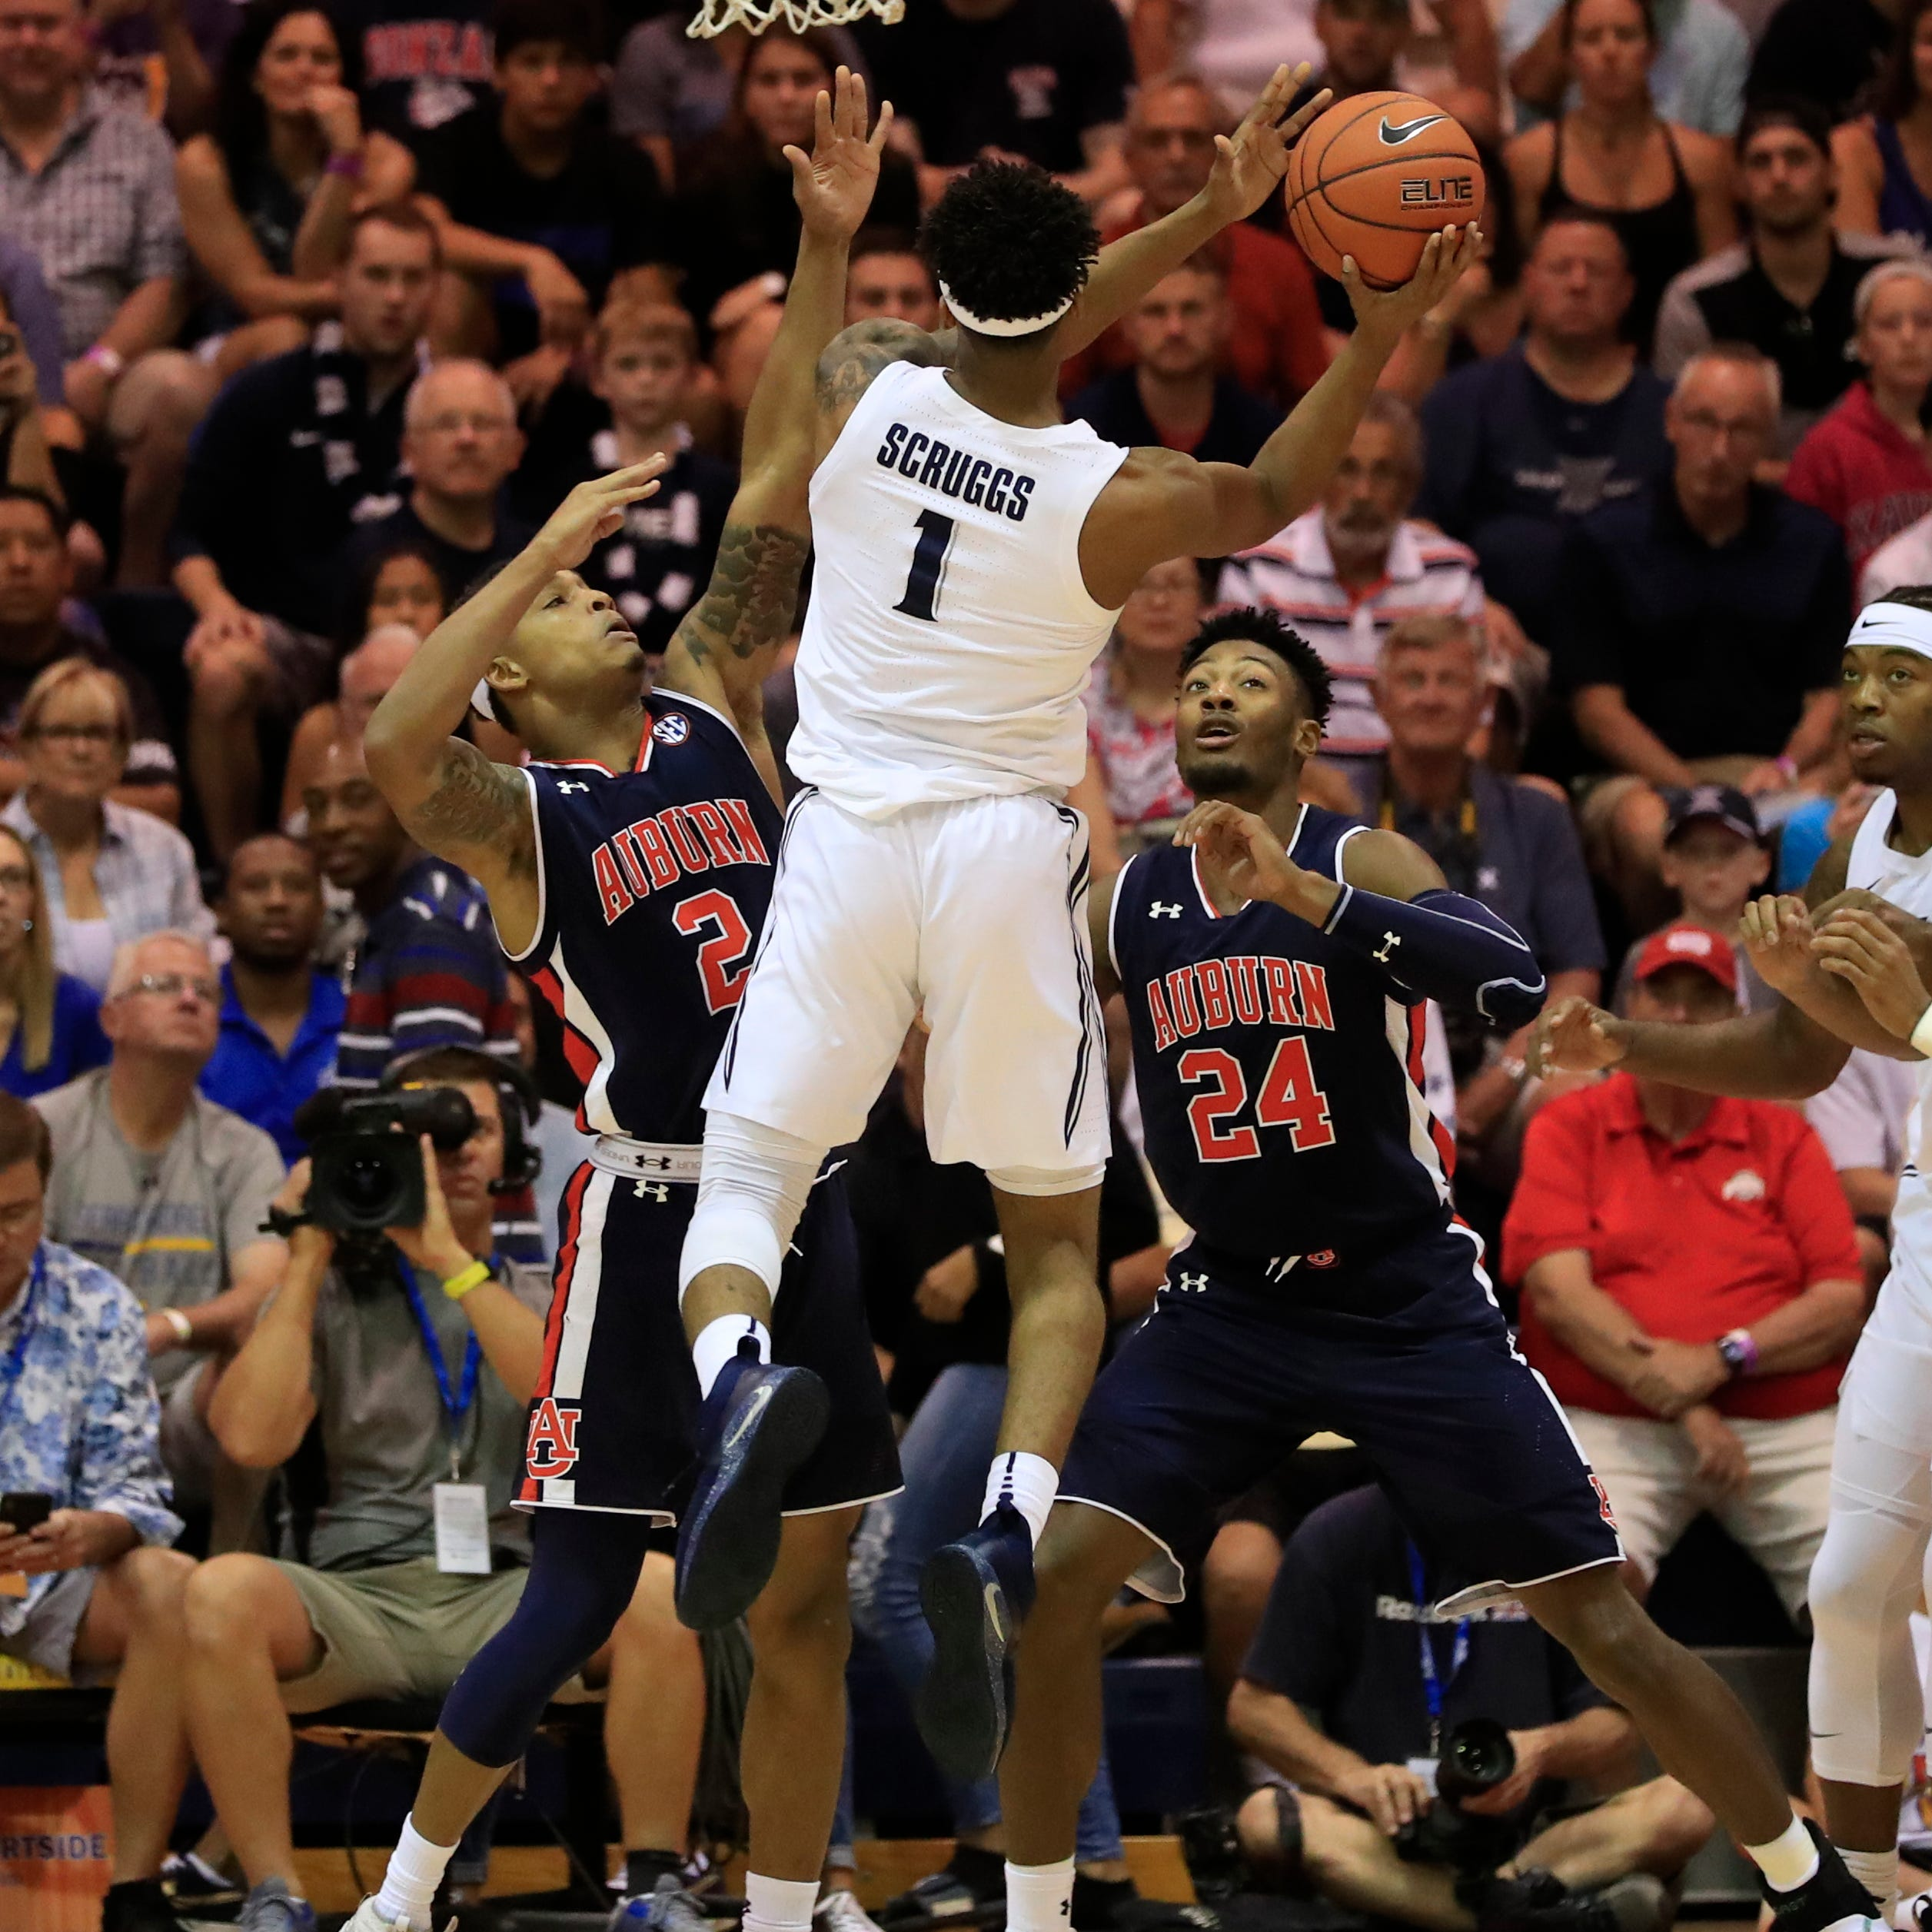 Live updates: Auburn leads Xavier in a close game at halftime in Maui